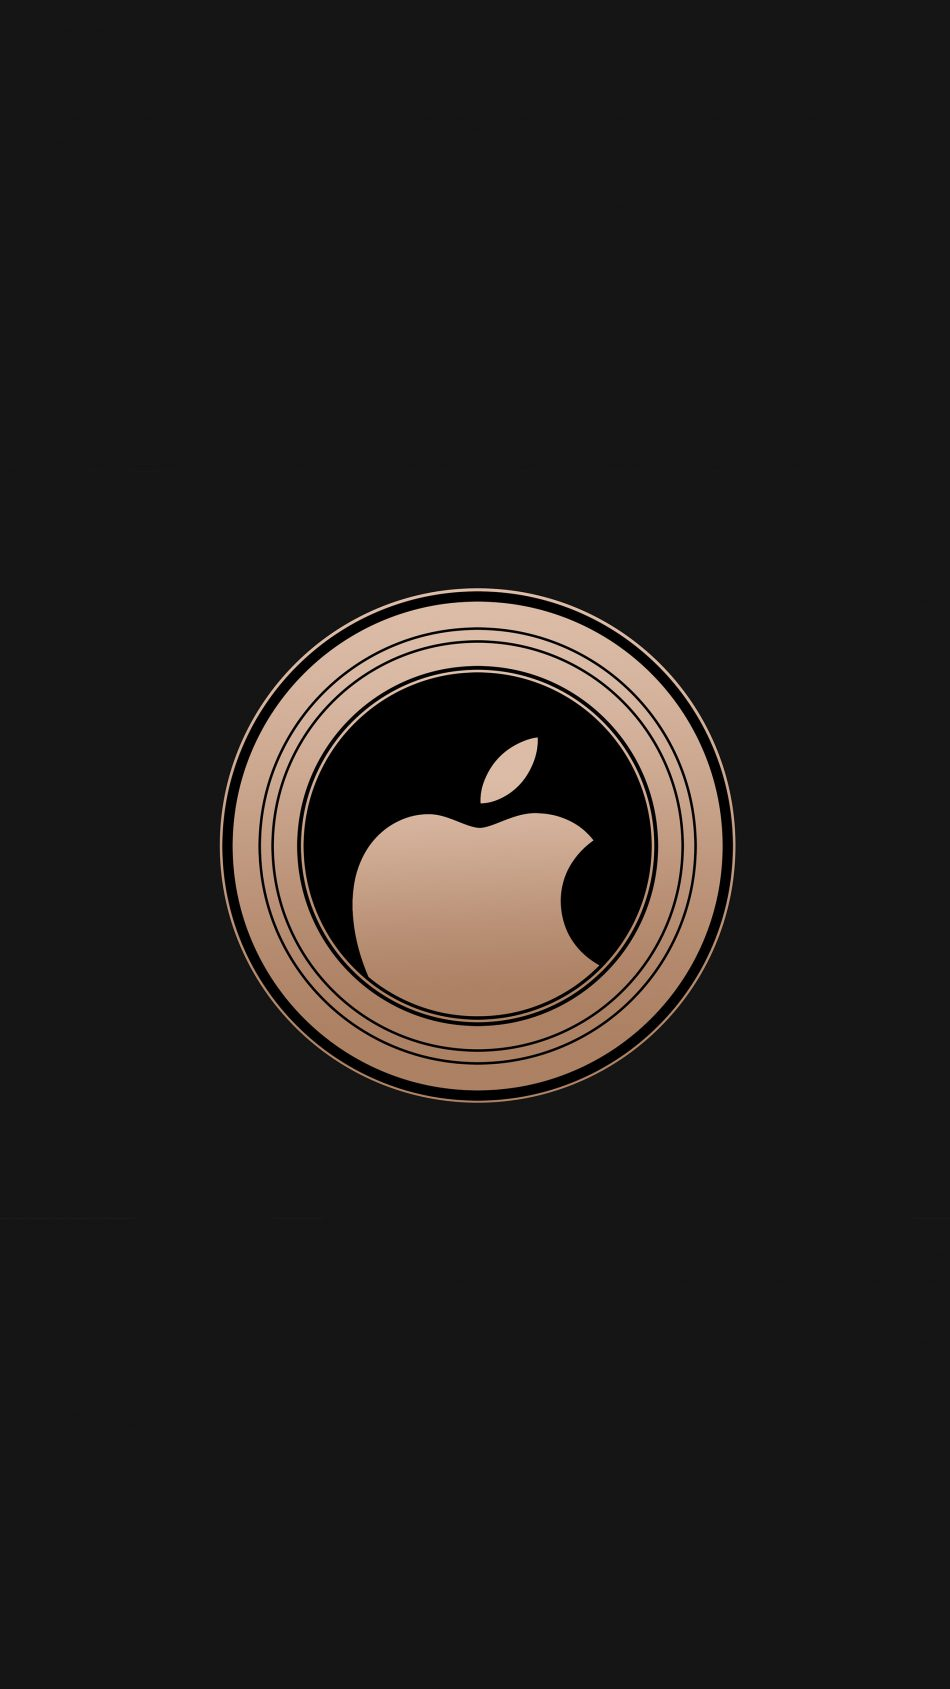 Apple Logo Iphone Xs 4k Ultra Hd Mobile Wallpaper